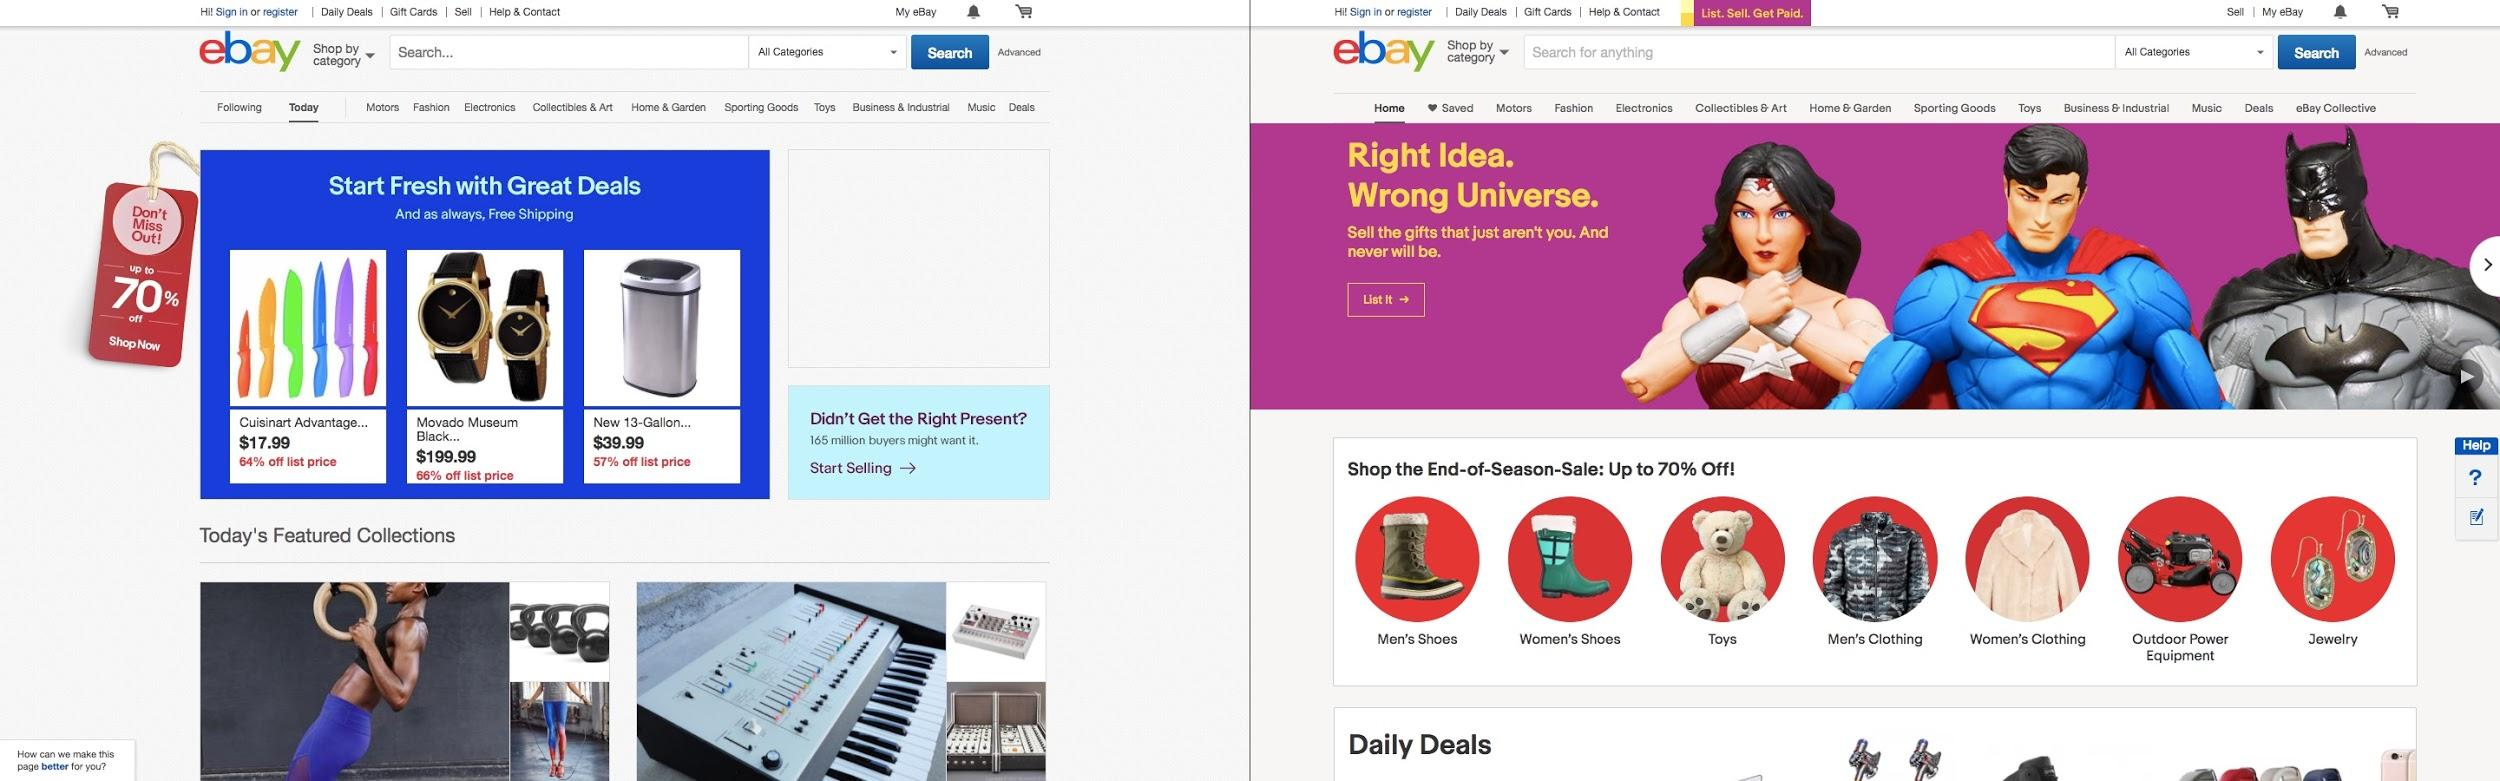 eBay, before and after their redesign